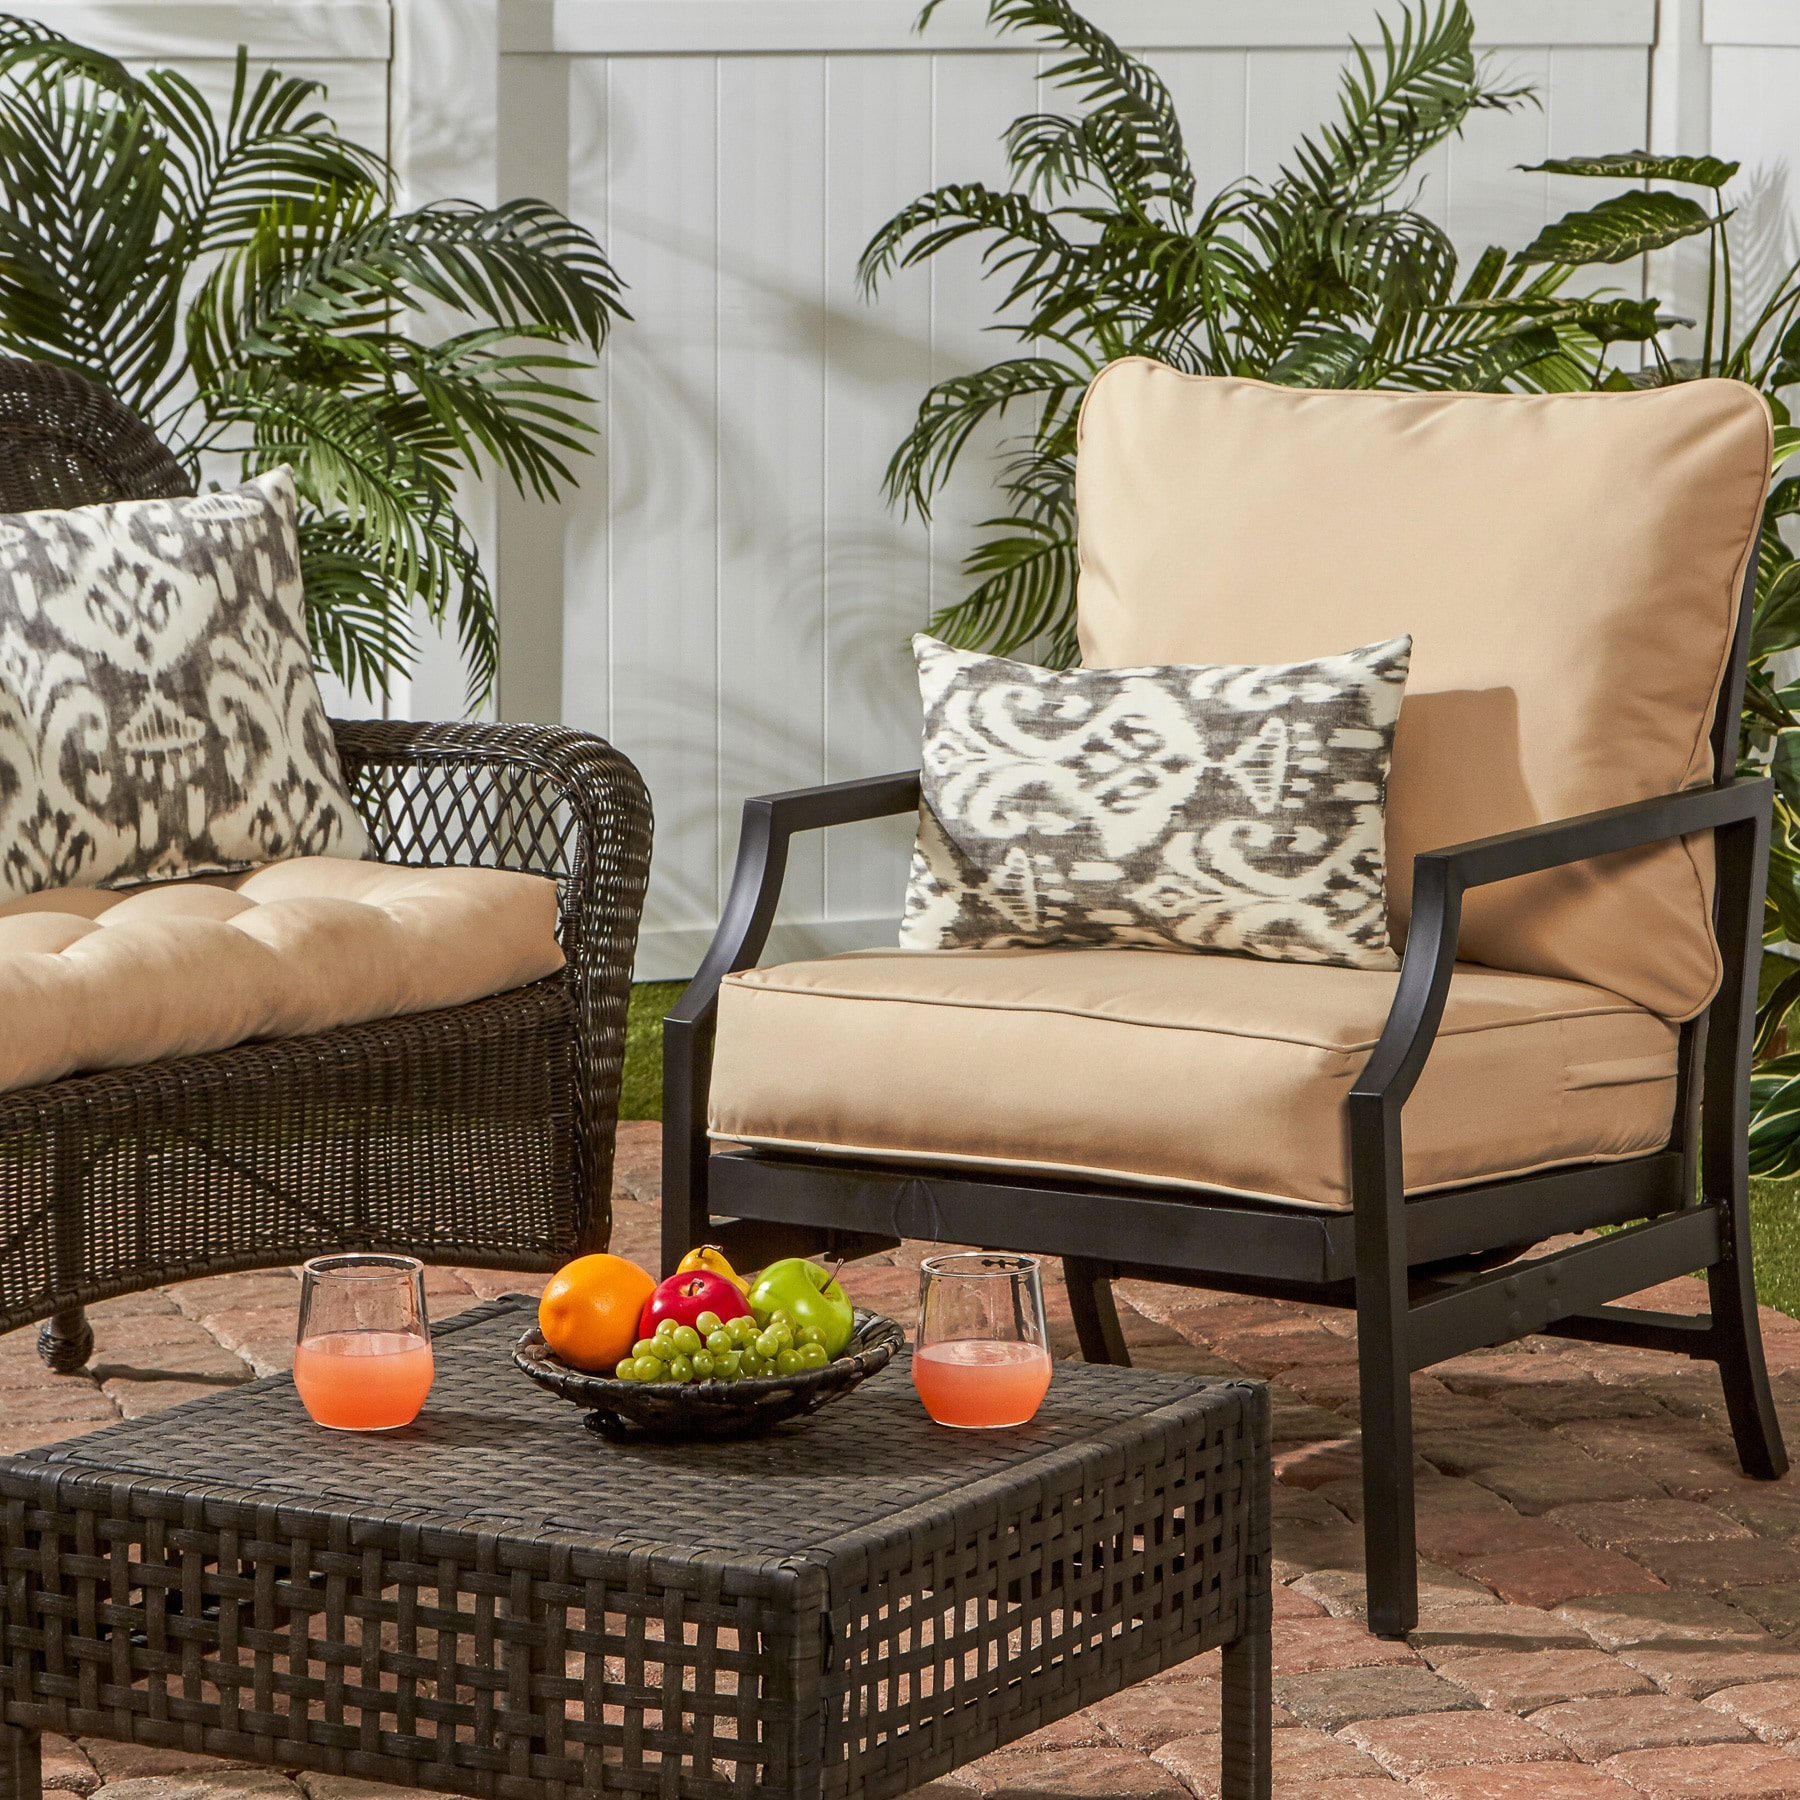 Outdoor Cushions & Pillows For Less